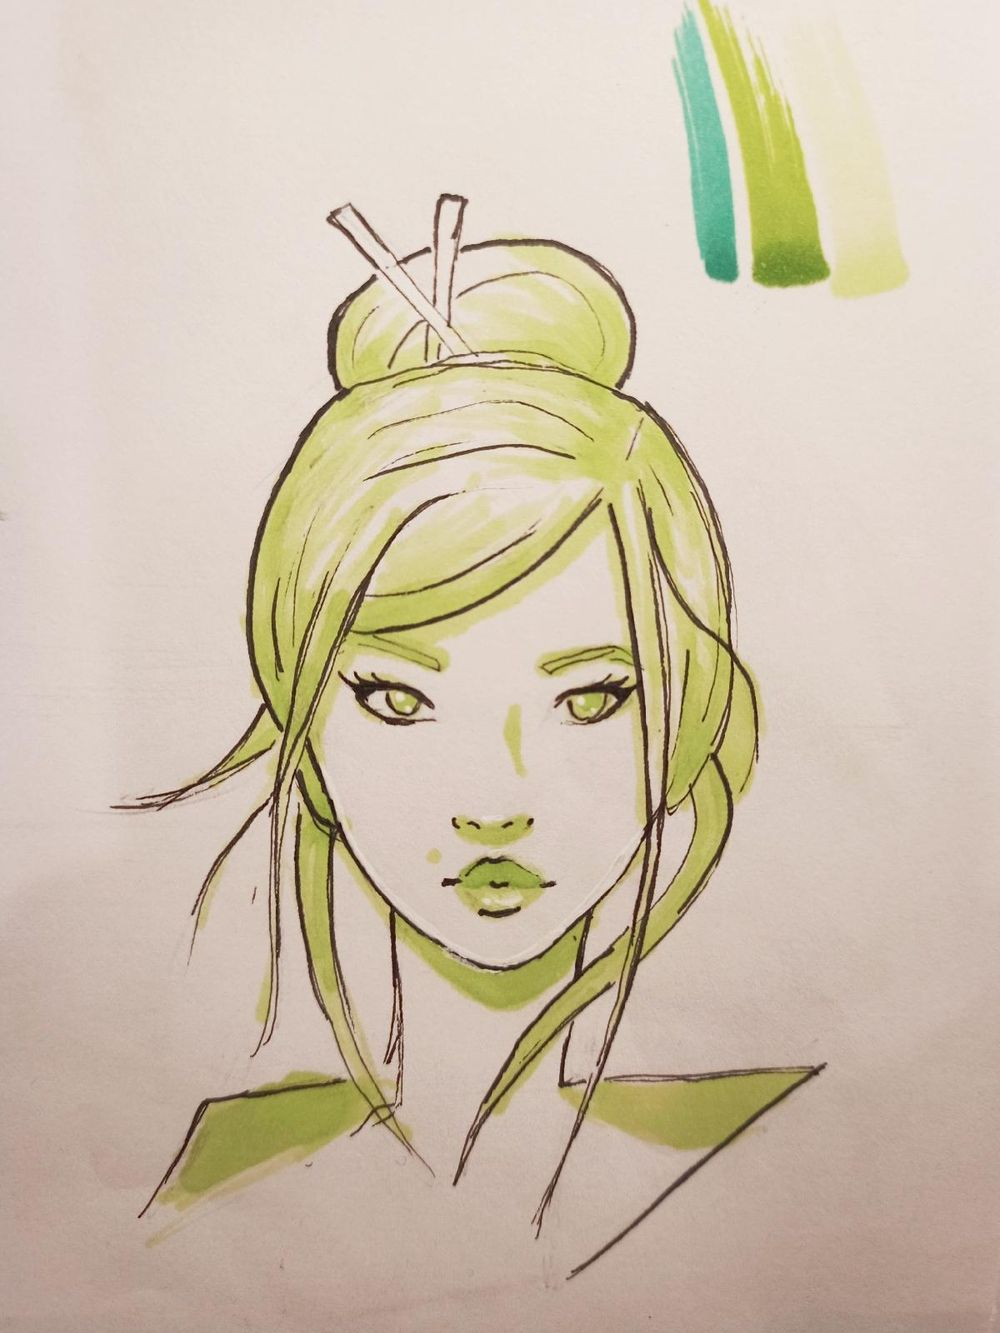 Female Character Design - image 2 - student project